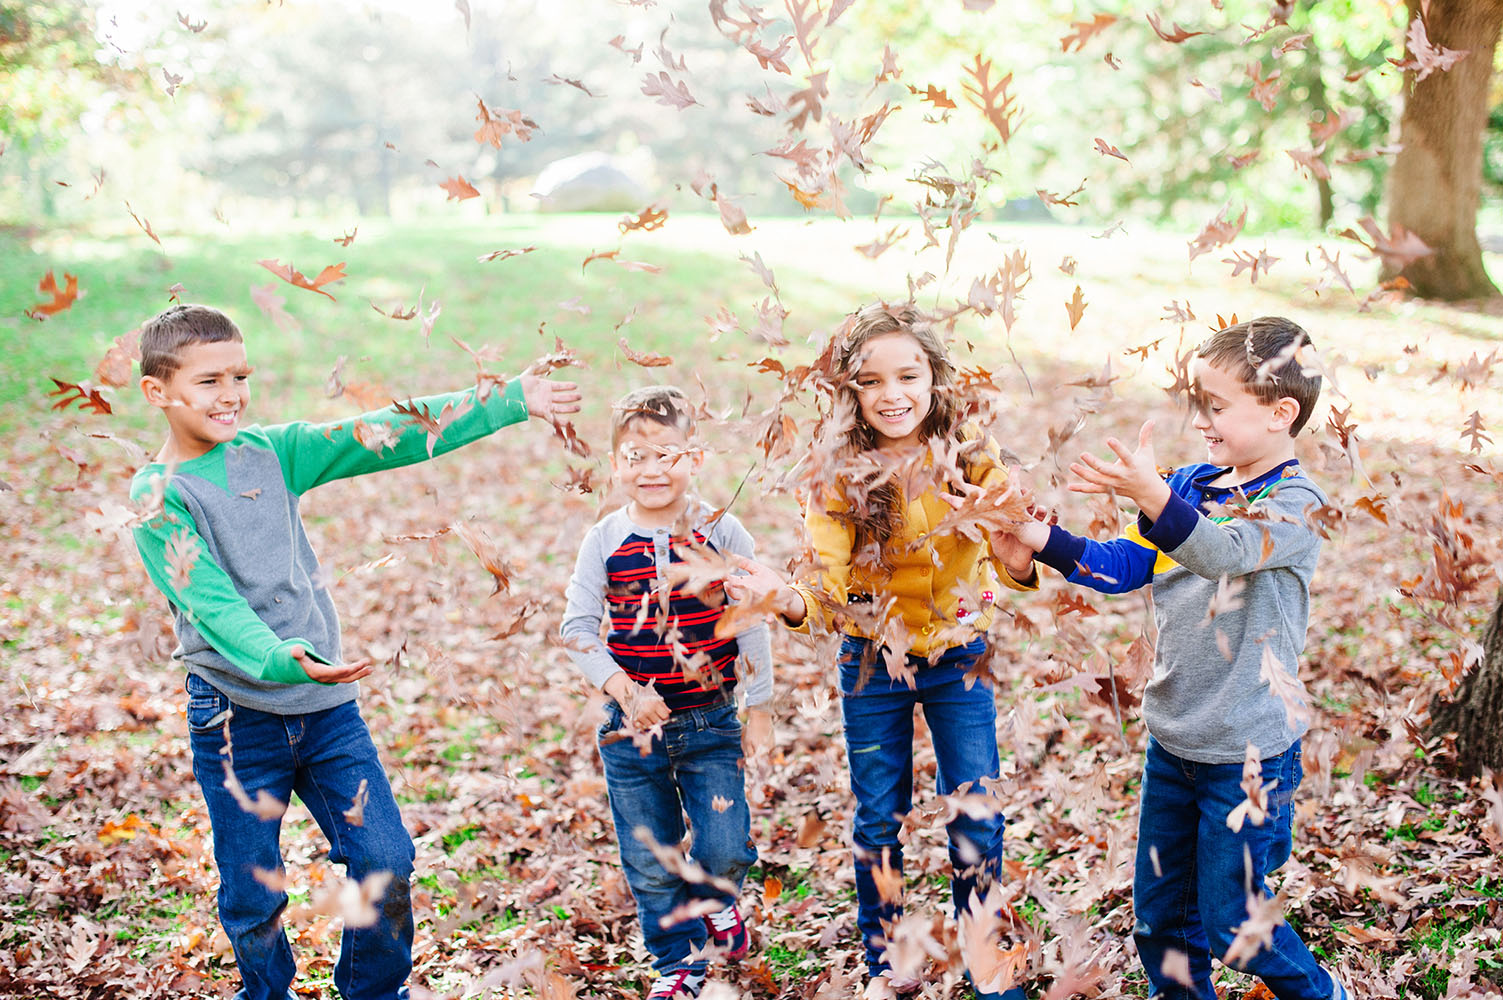 Kids playing in the leaves